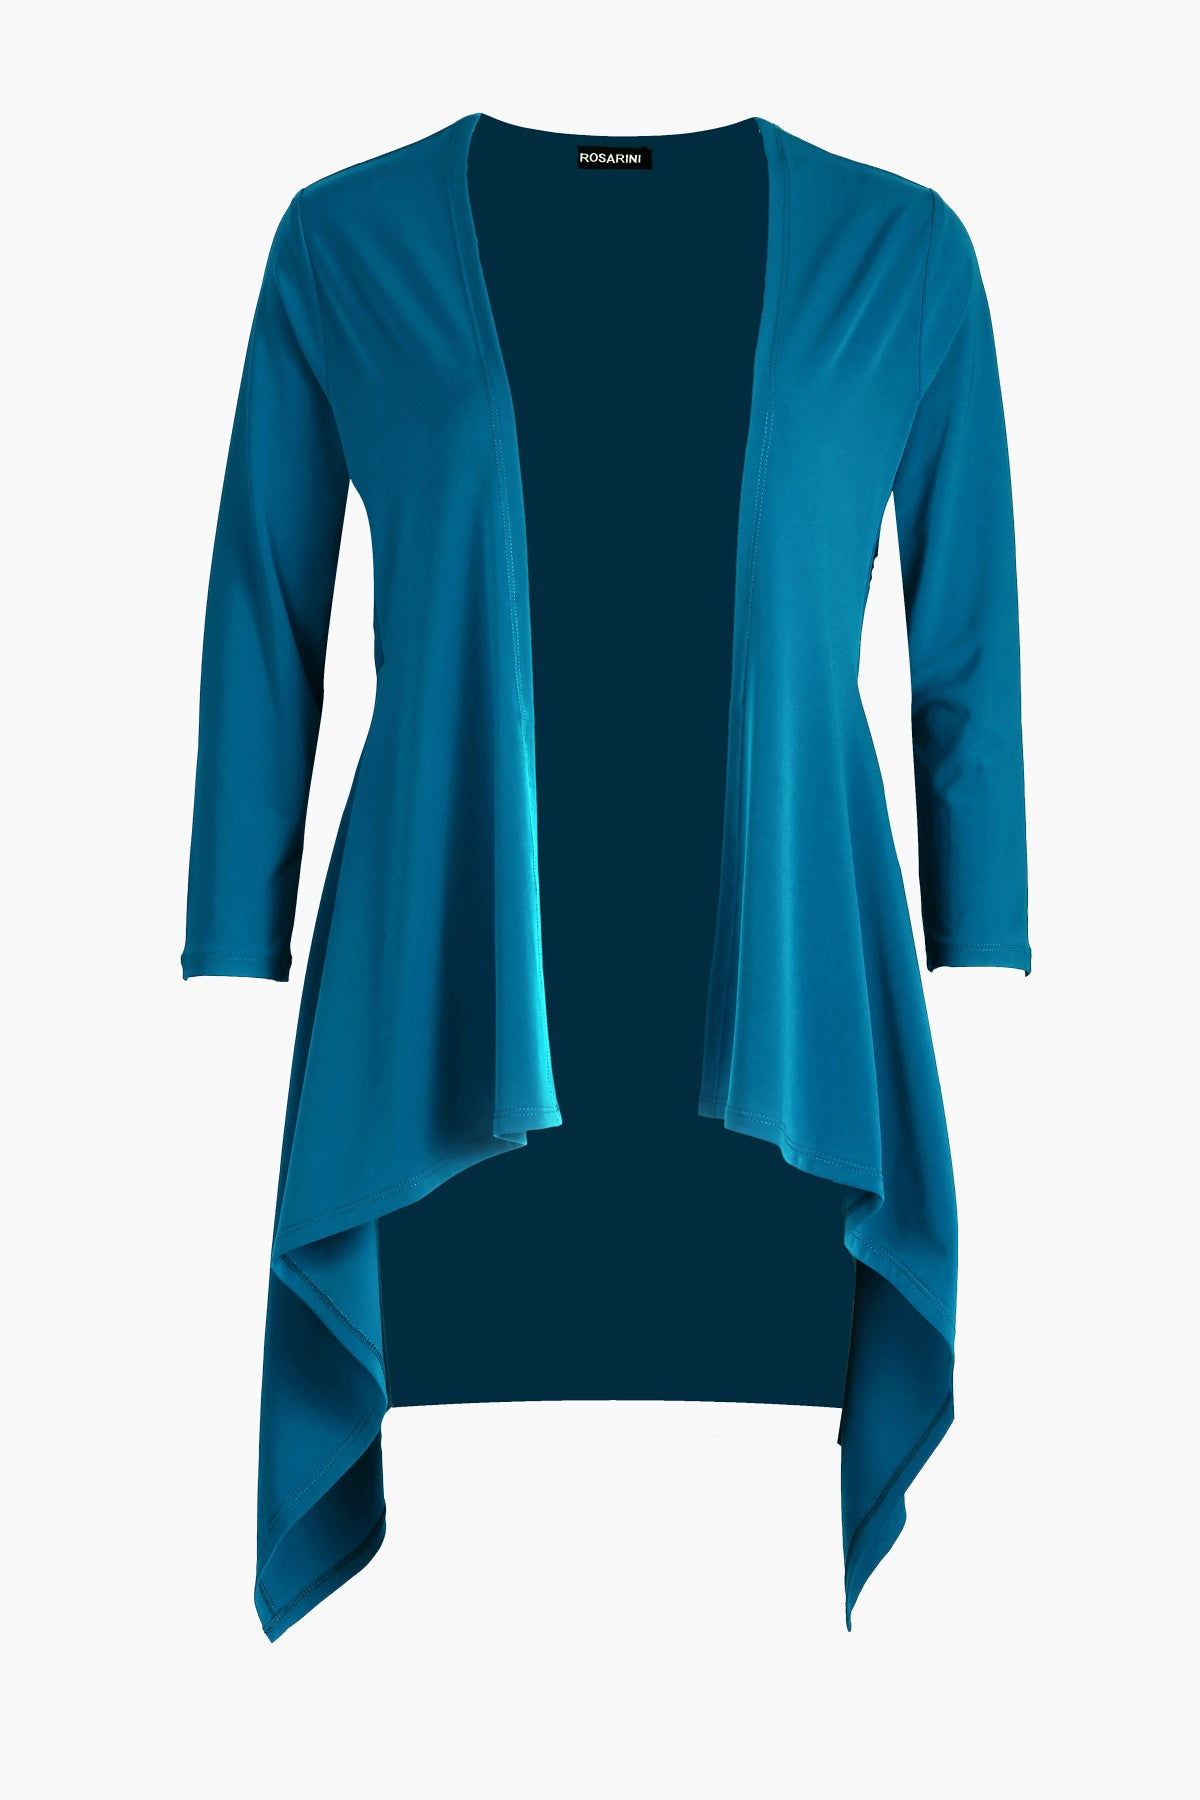 PLUS SIZE Long Flyaway Cardigan teal